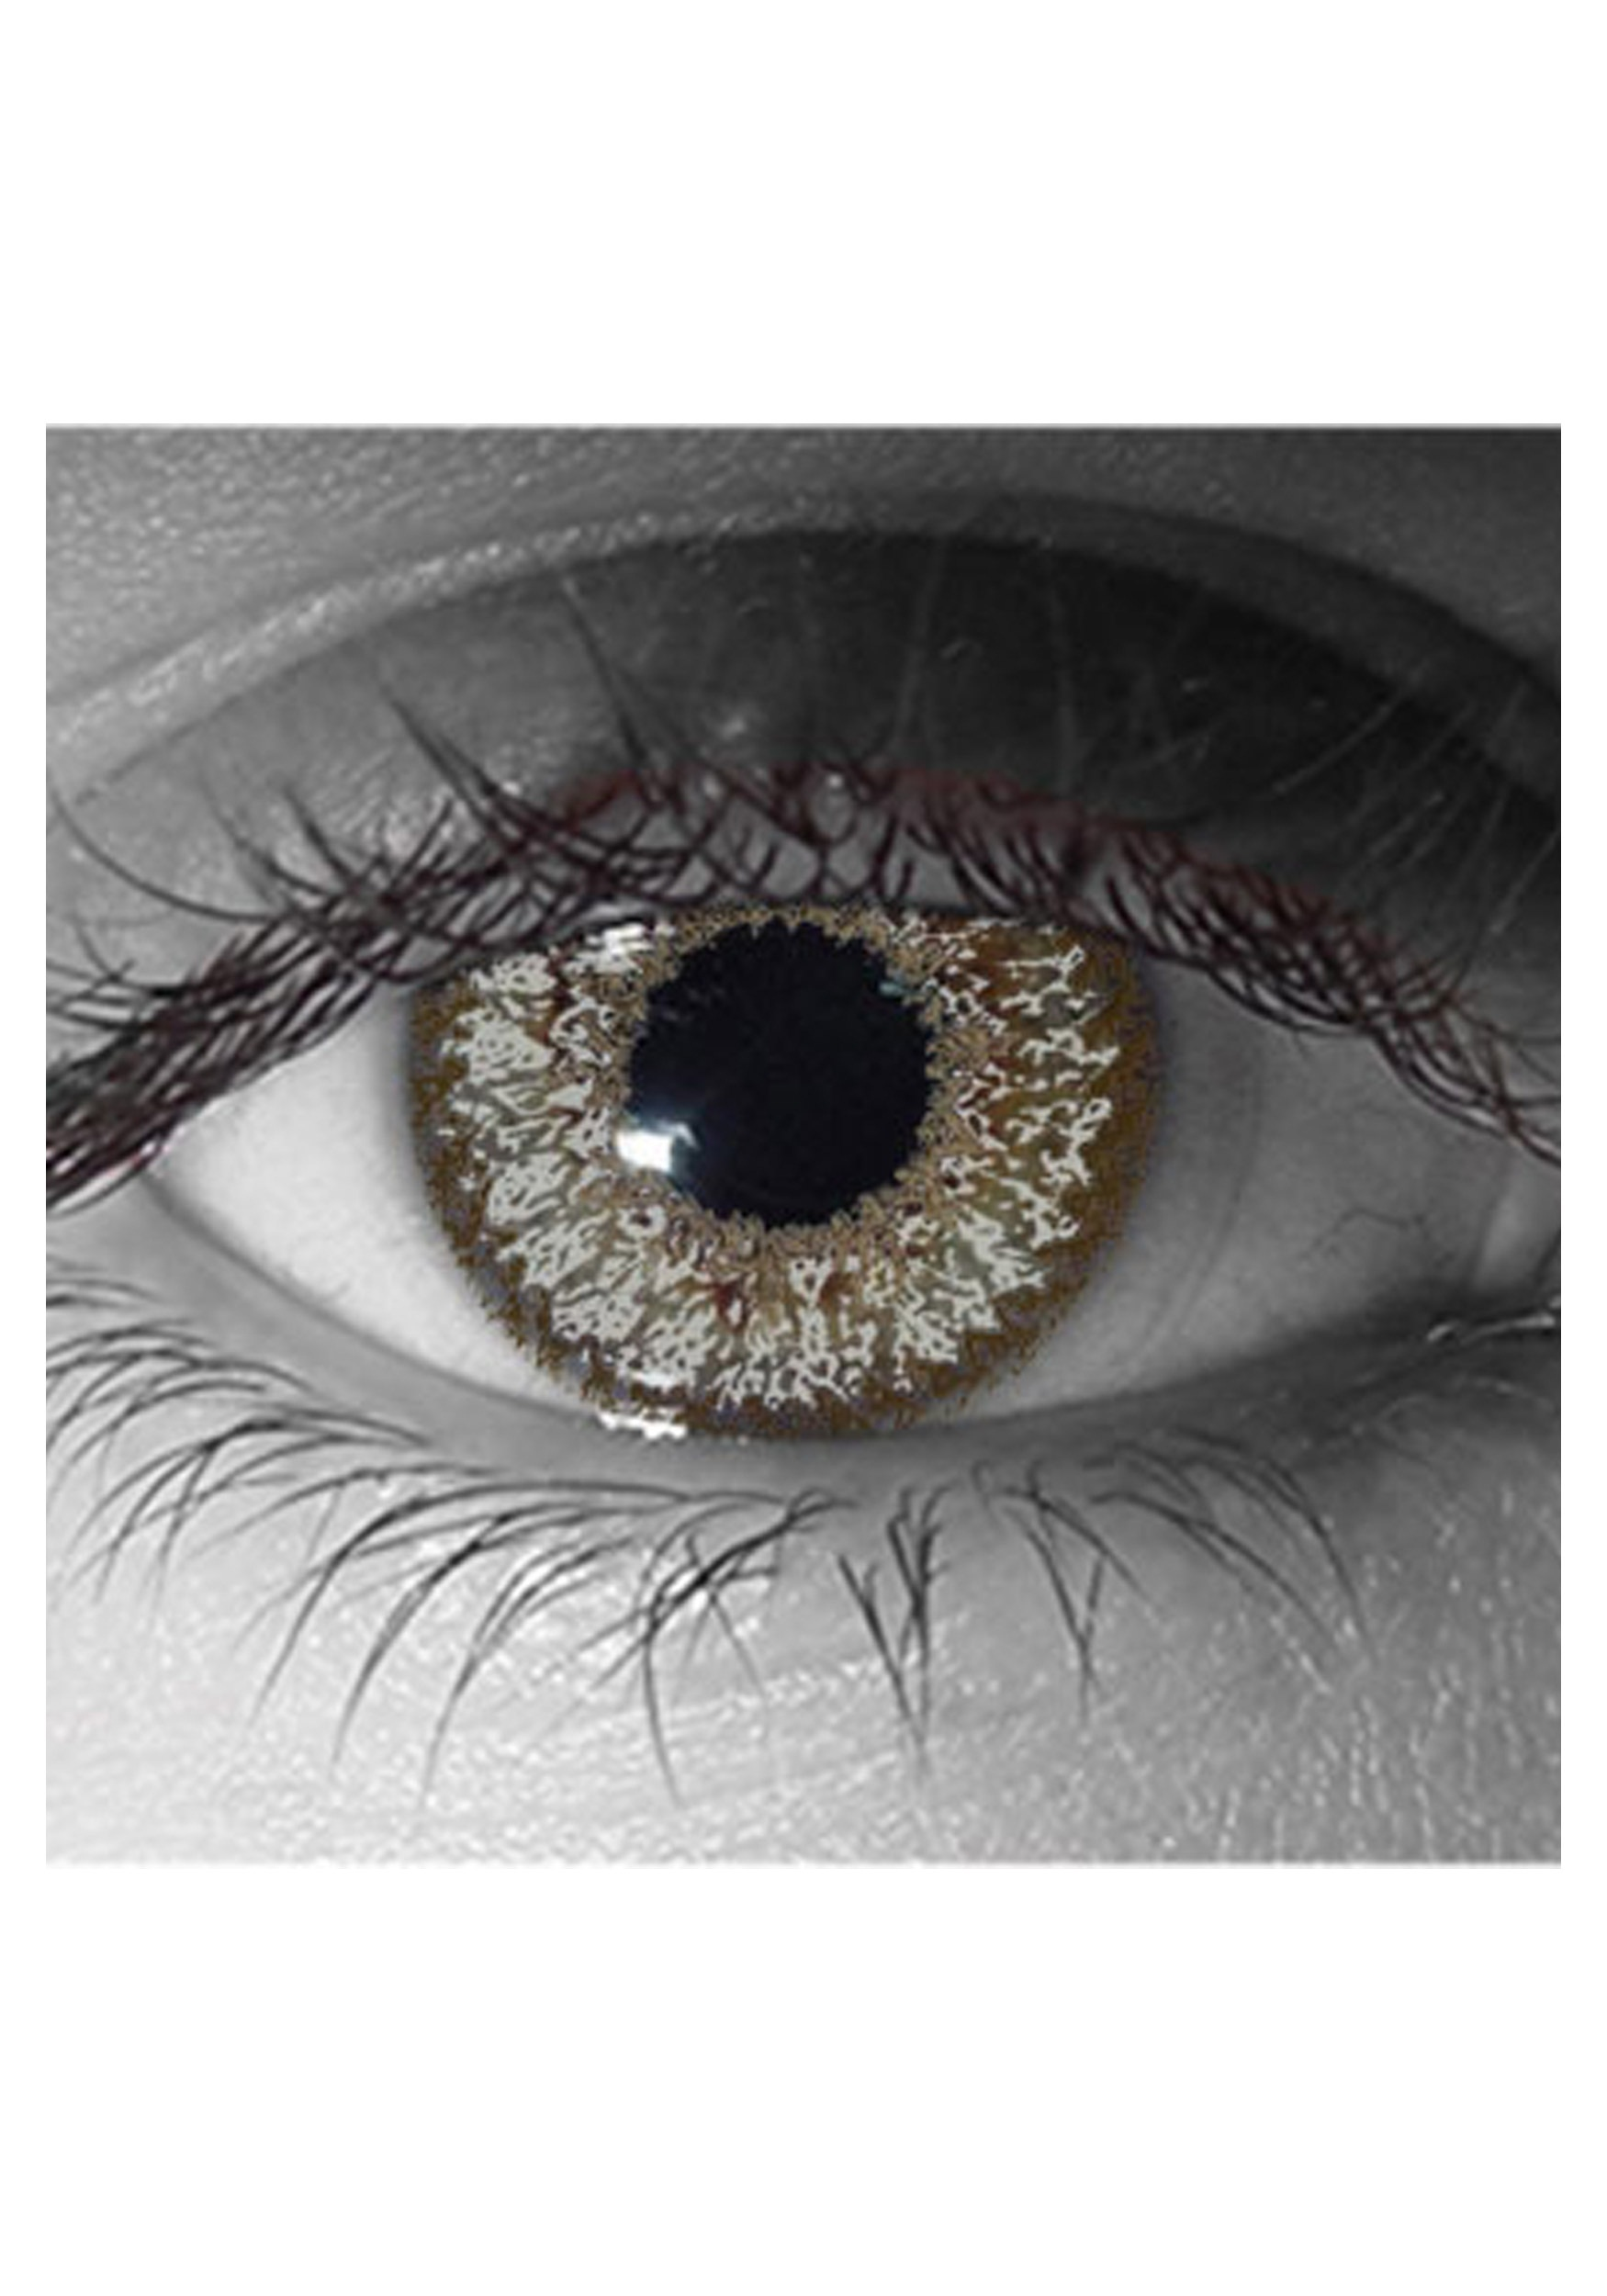 Venus Slate Gray Contact Lenses